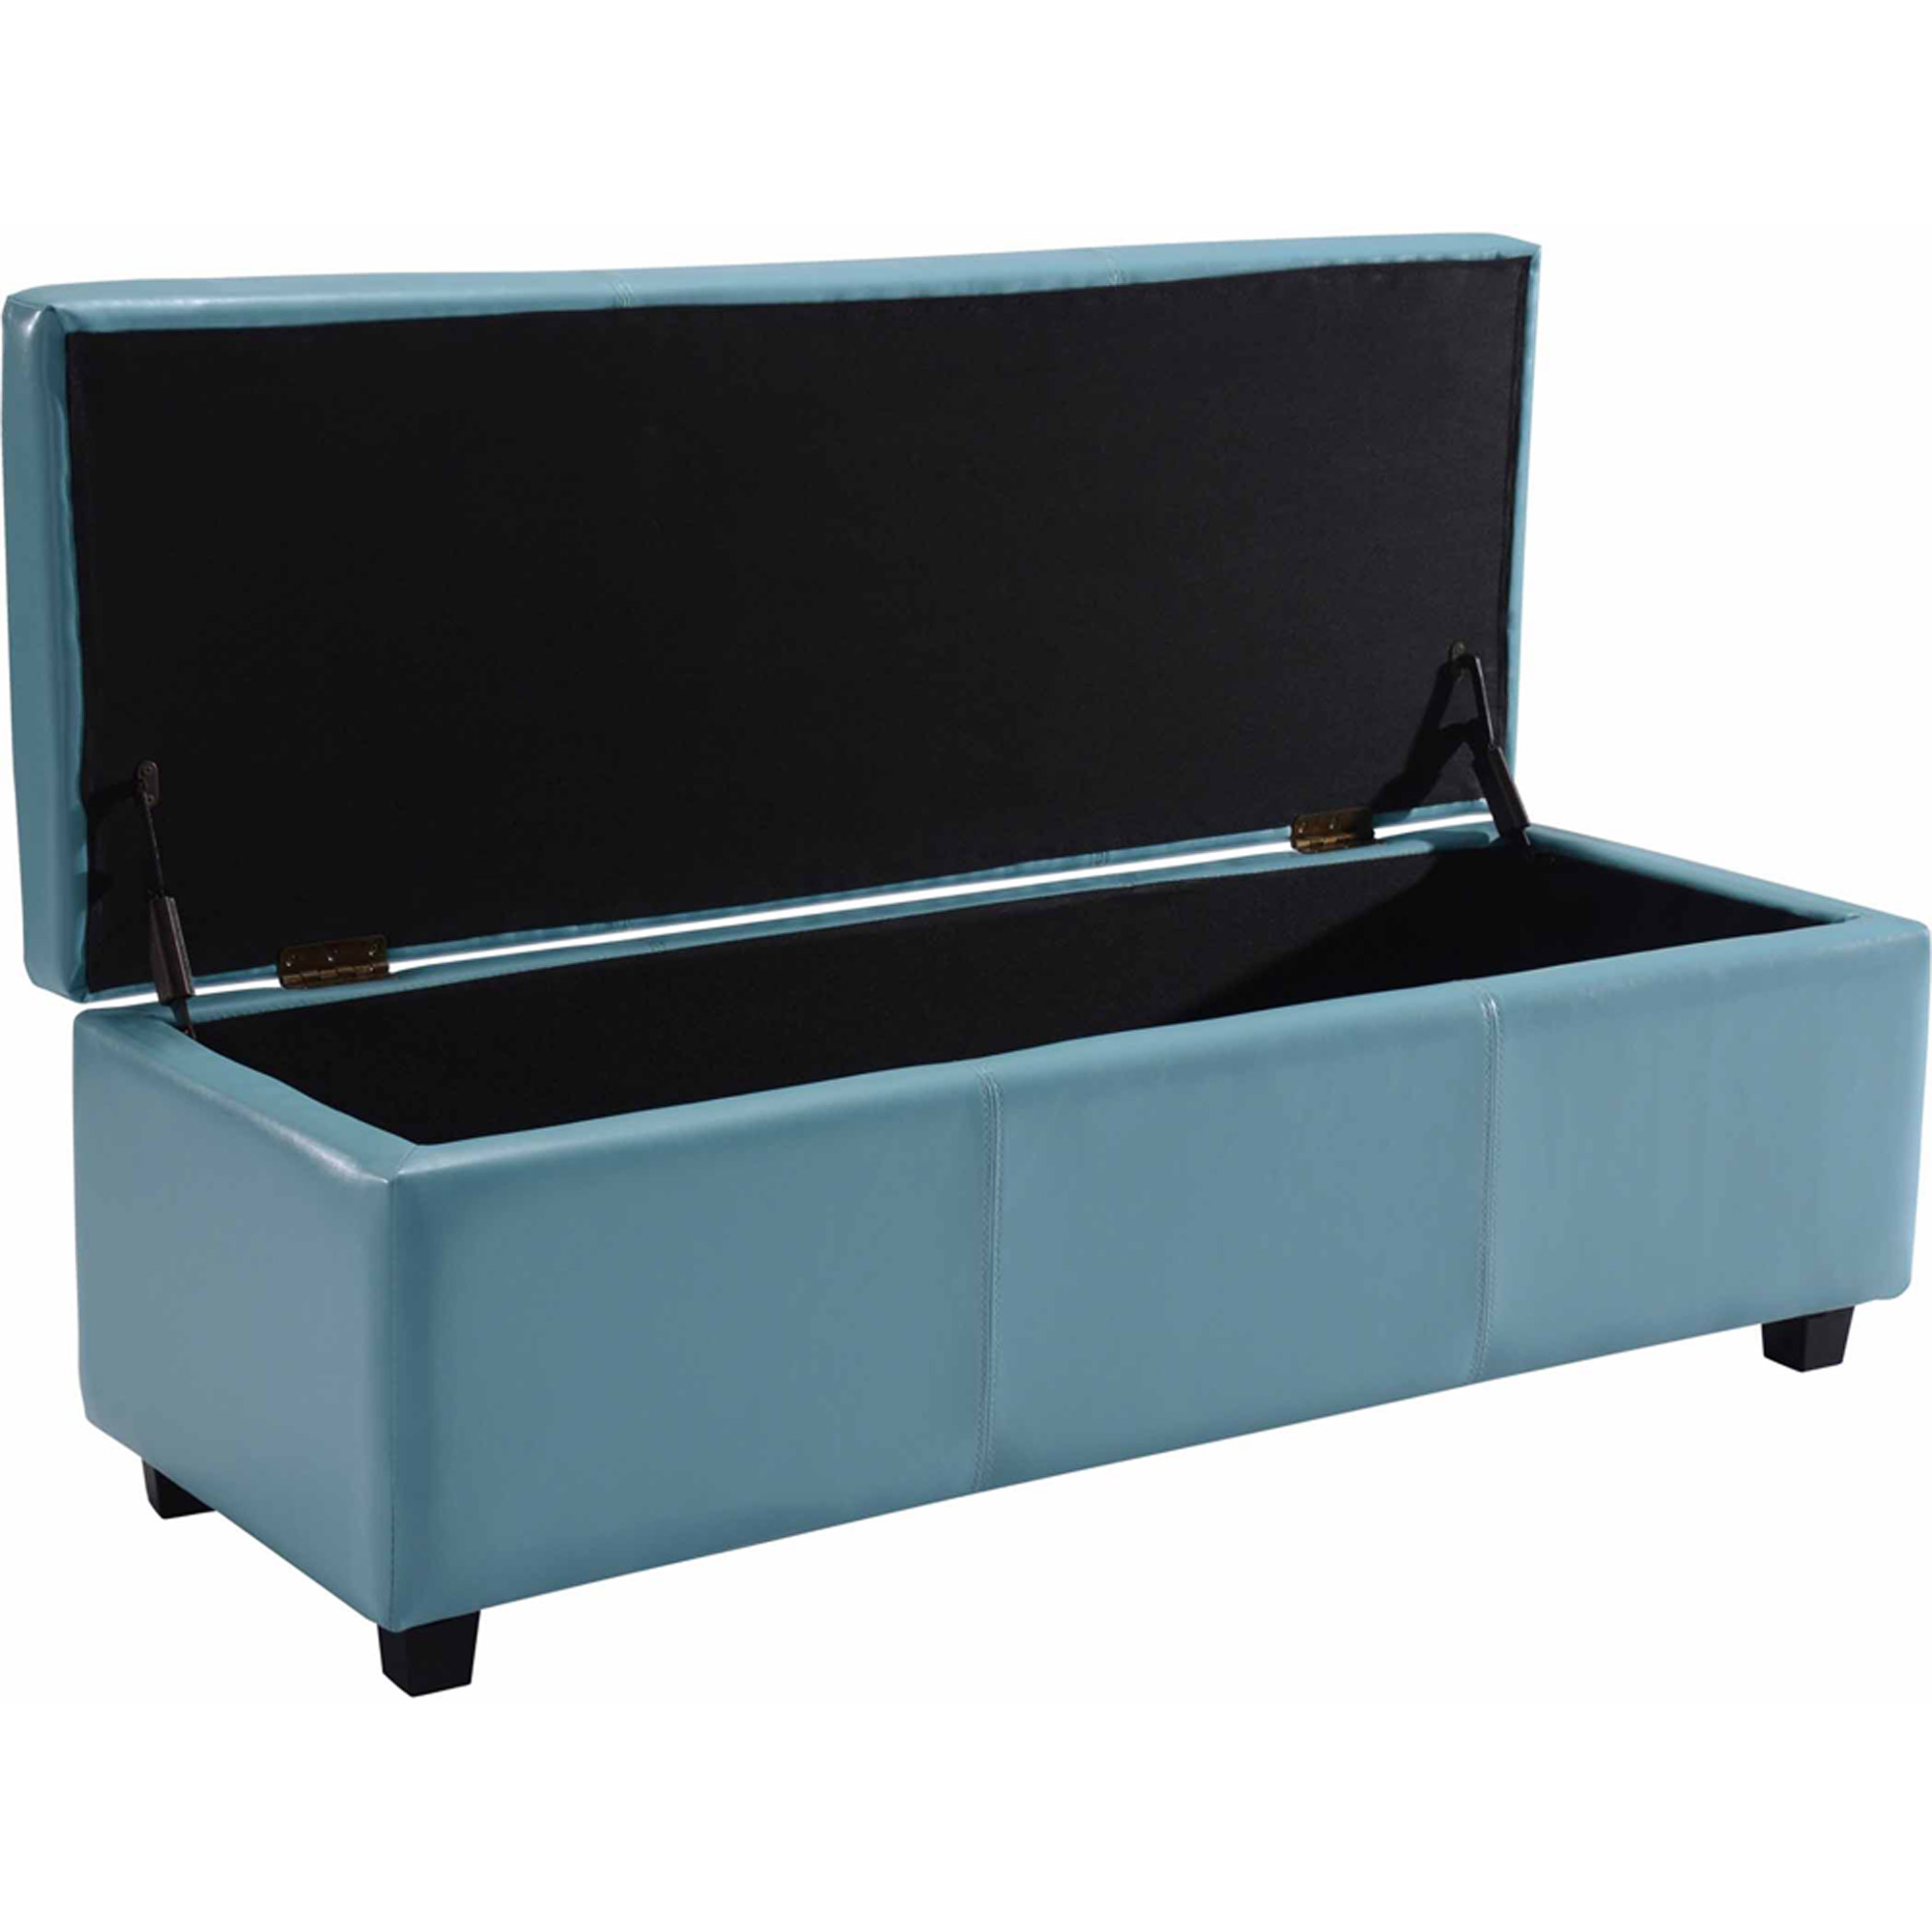 Simpli Home Avalon Large Storage Ottoman Bench - Walmart.com